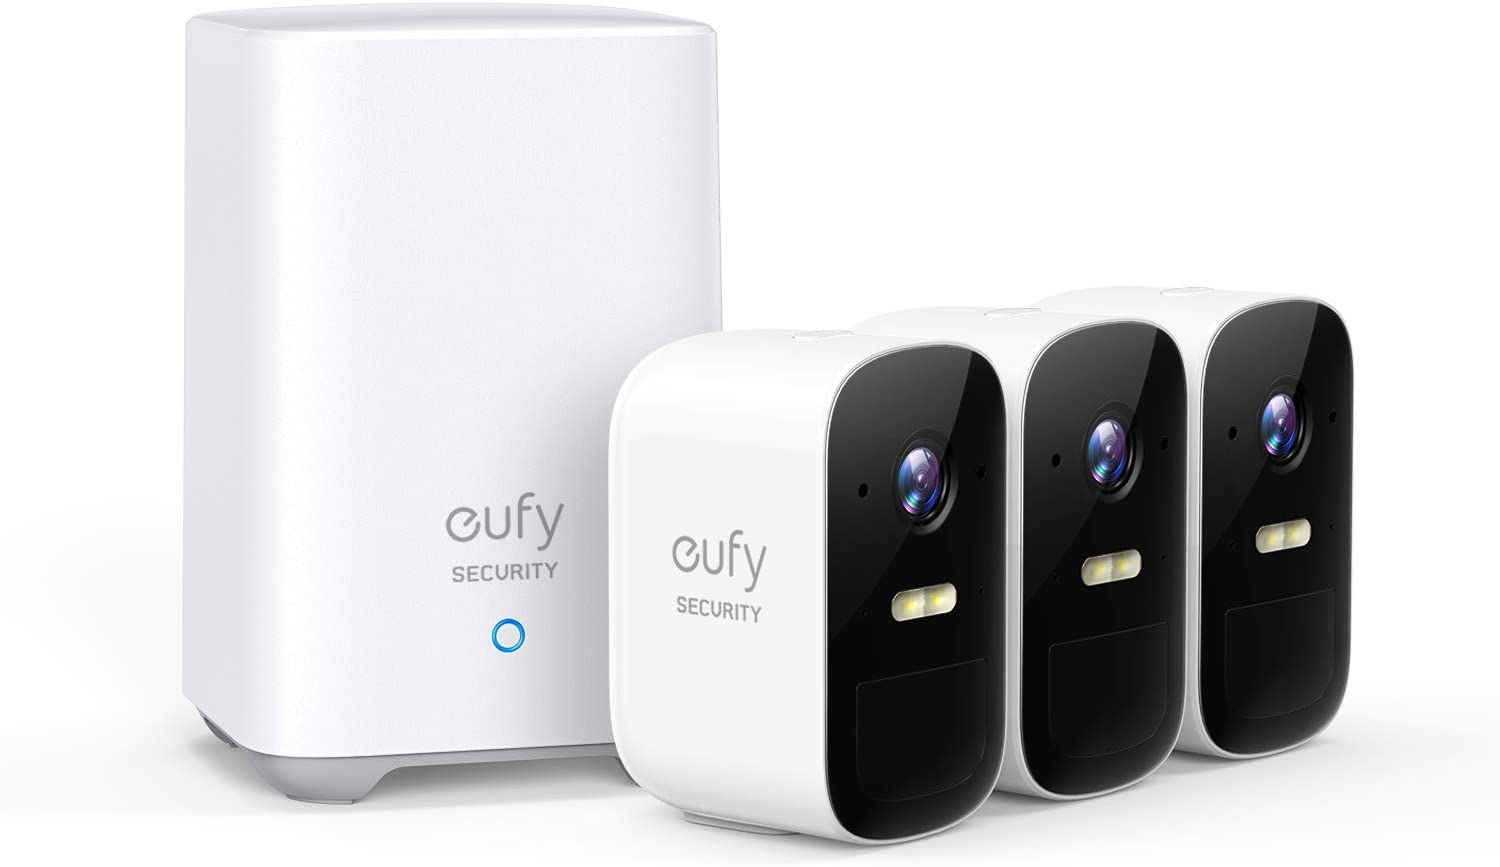 eufy Security, eufyCam 2C Wireless Home Security Camera System, 180-Day Battery Life, HD 1080p, IP67 Weatherproof, Night Vision, Compatible with Amazon Alexa, 3-Cam Kit, No Monthly Fee